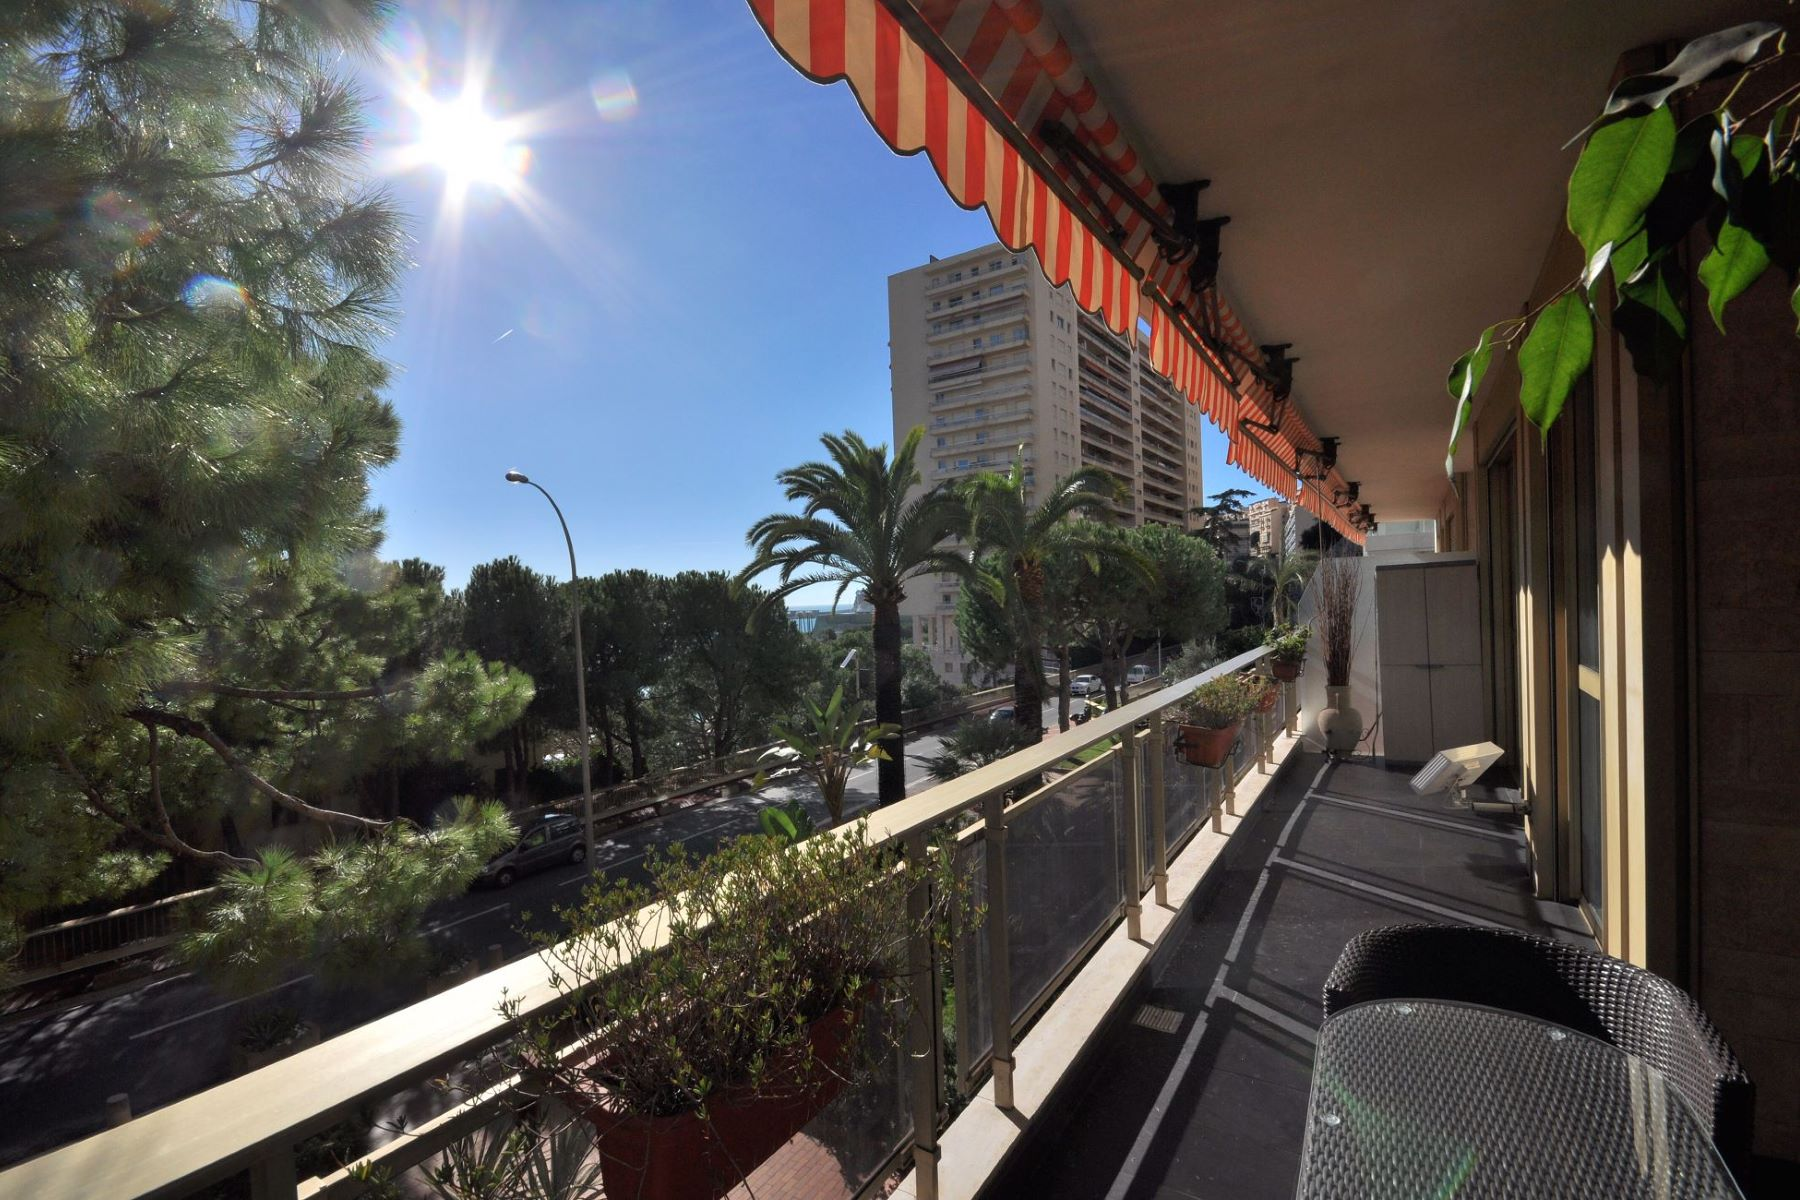 Appartement pour l Vente à Beautiful apartment near the beaches Le Vallespir 25 Boulevard du Larvotto Monaco, La Condamine, 98000 Monaco